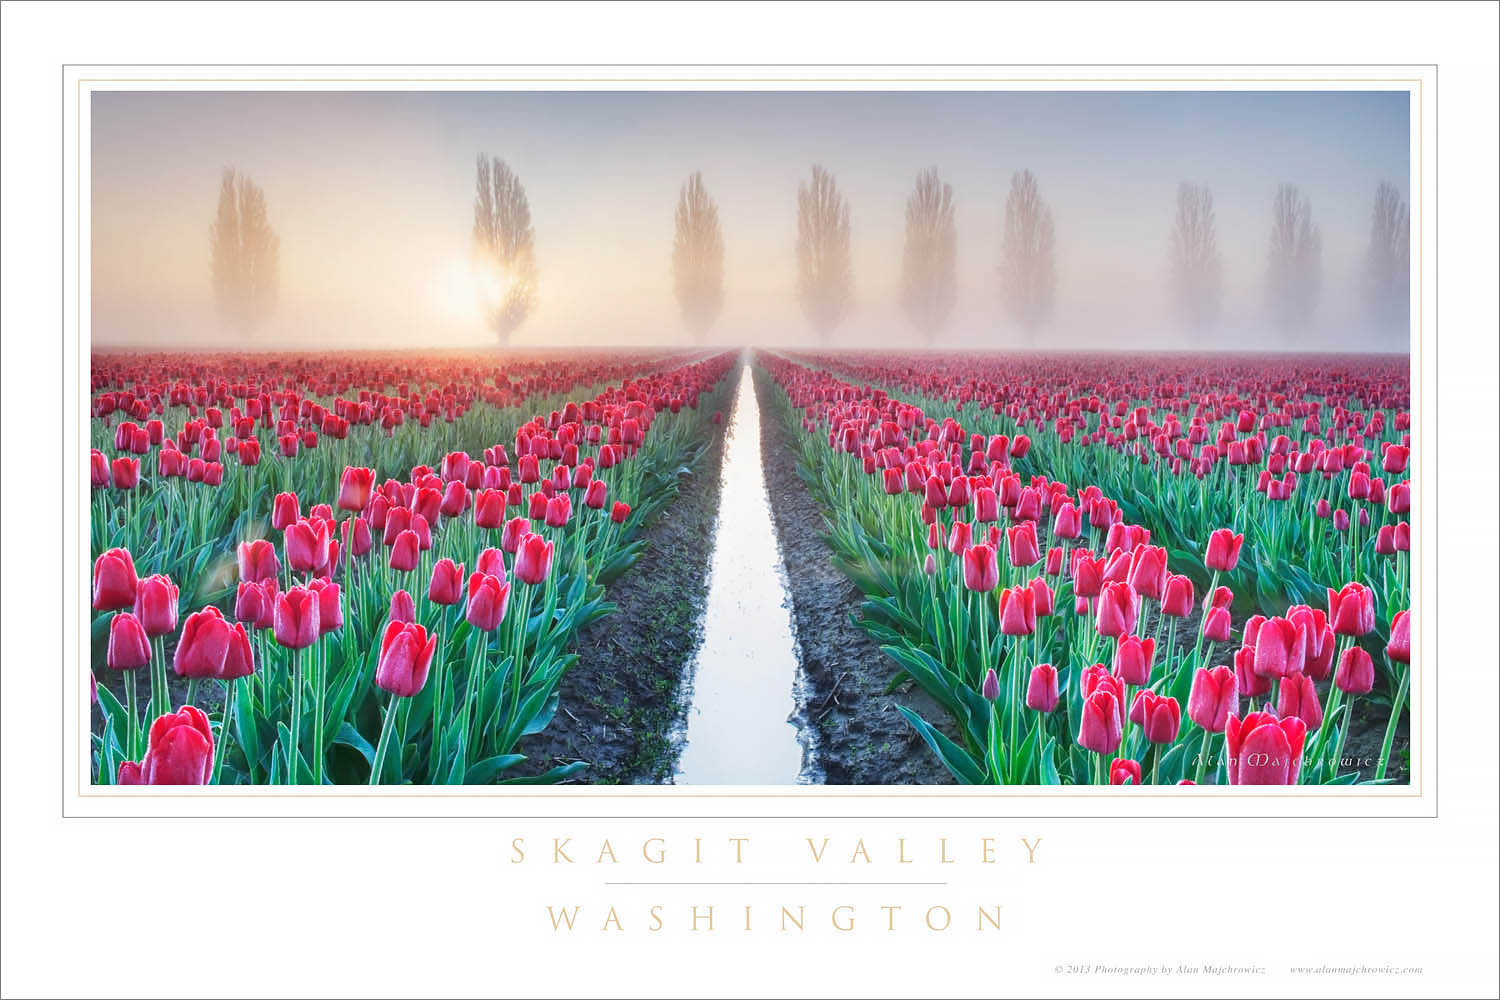 Skagit Valley Tulips Washington